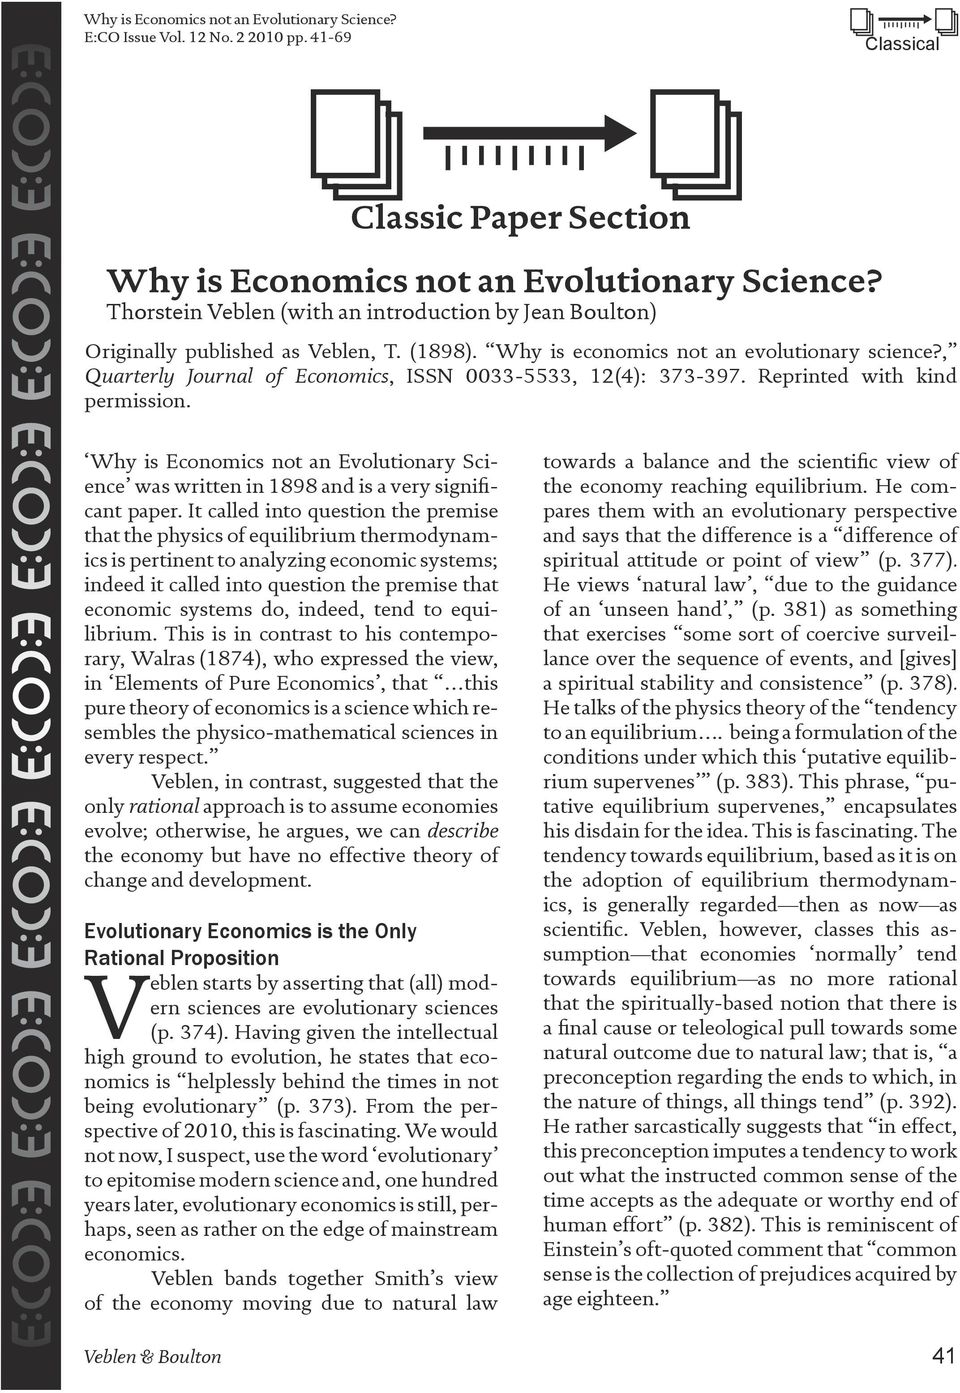 , Quarterly Journal of Economics, ISSN 0033-5533, 12(4): 373-397. Reprinted with kind permission. Why is Economics not an Evolutionary Science was written in 1898 and is a very significant paper.